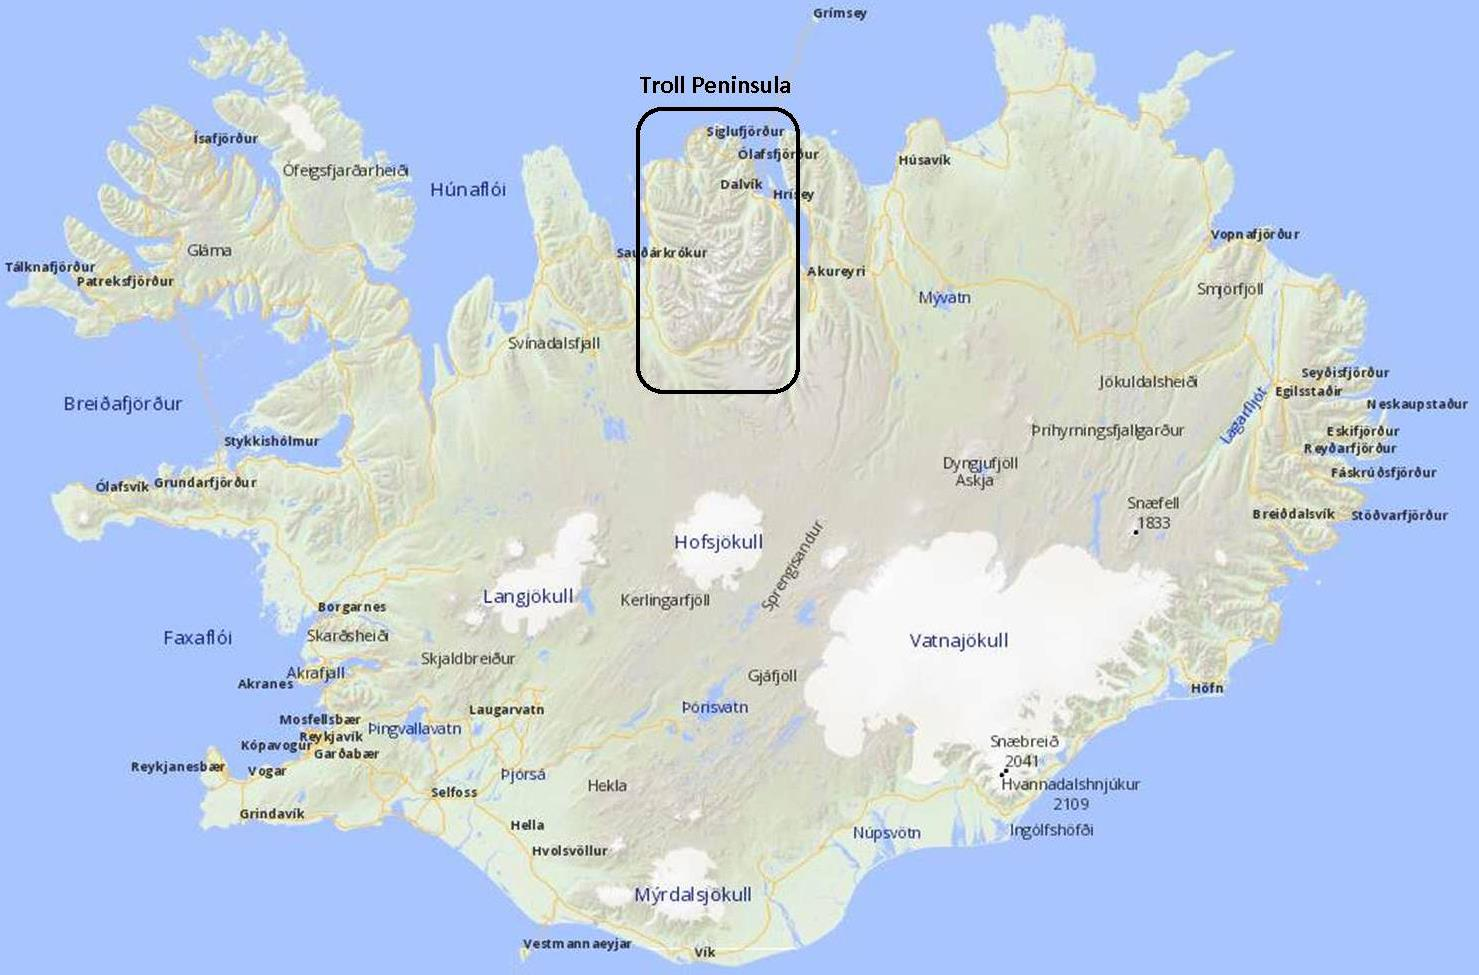 The location of Troll Peninsula in the north of Iceland